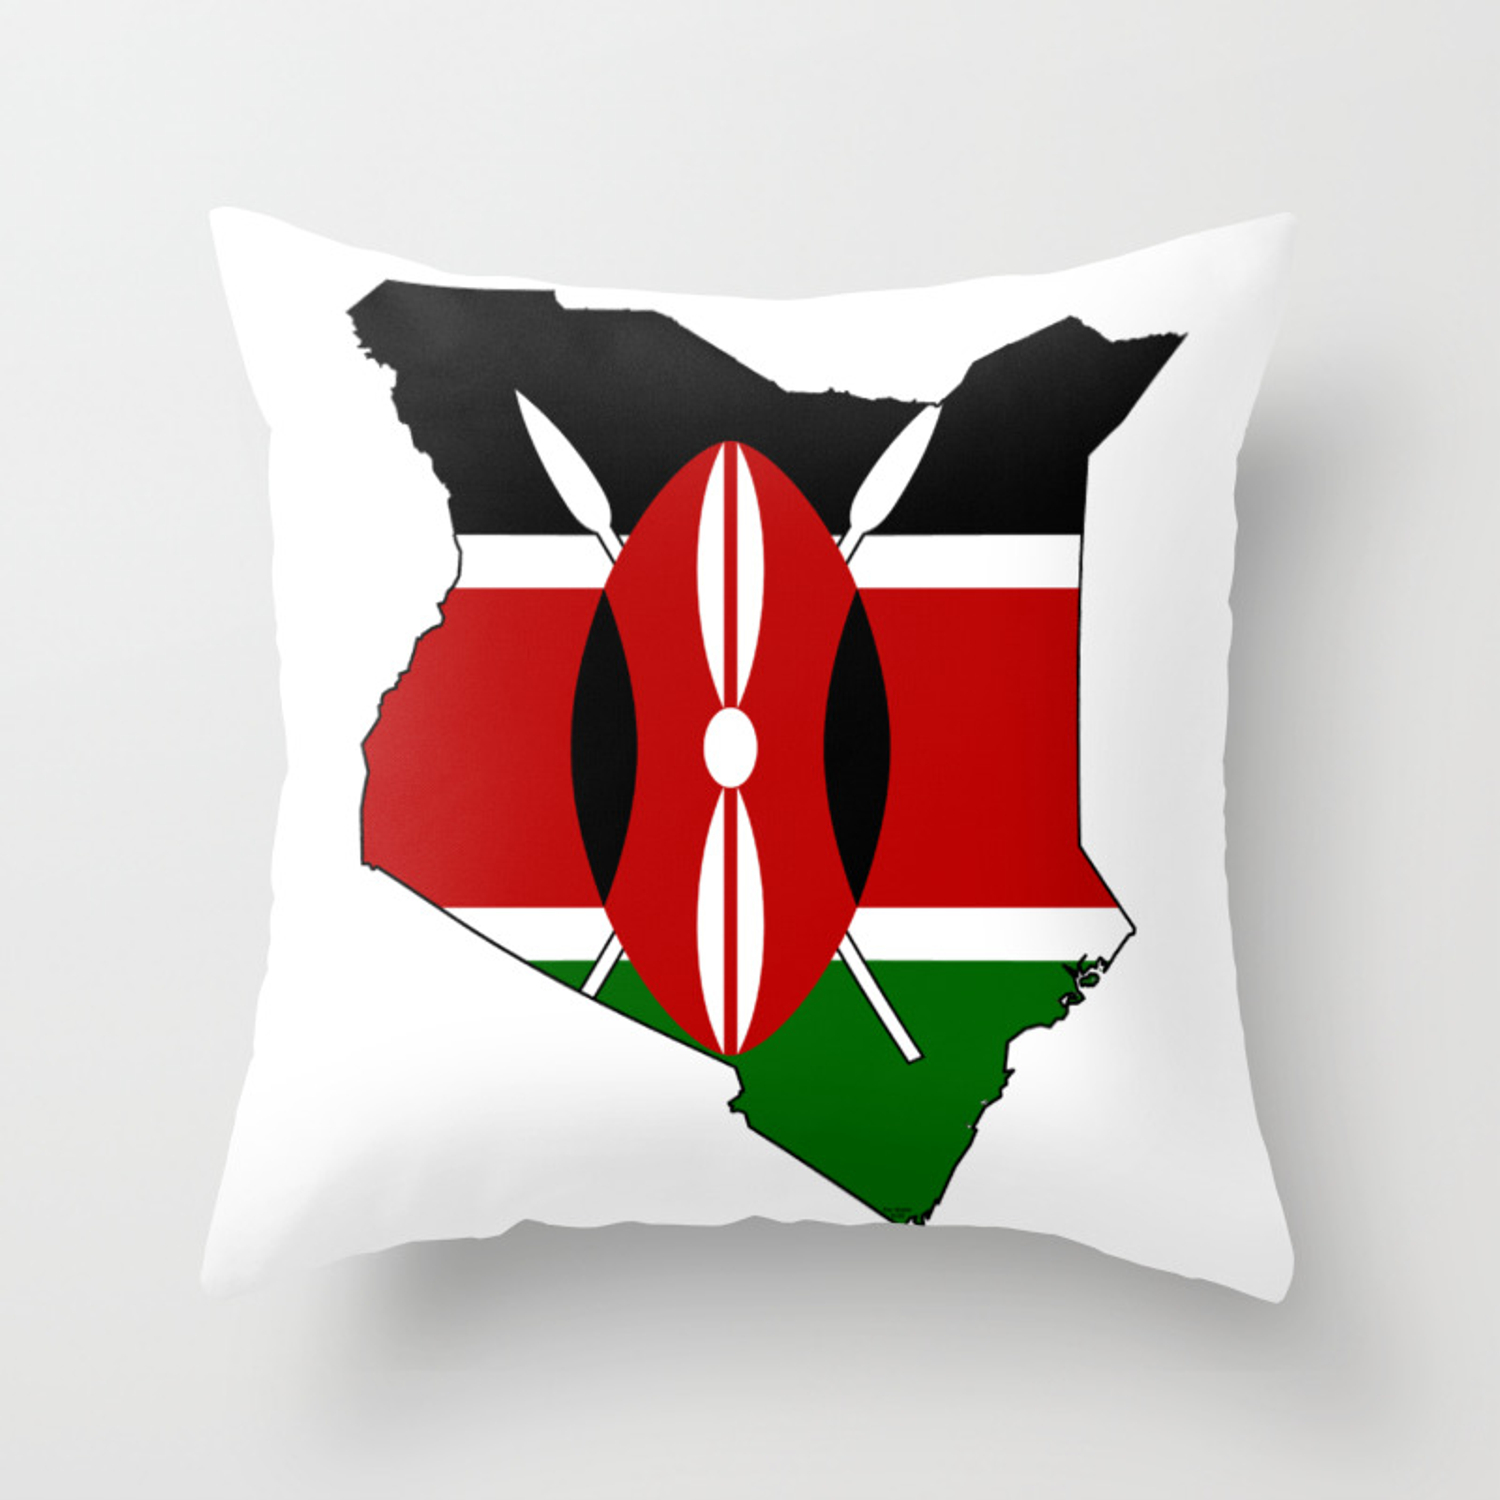 Kenya Map with Kenyan Flag Throw Pillow on kenya police map, kenya road map, kenya citizen-news, kenya on map, uganda map, kenya men, kenya ladies, kenya native animals, kenya media gossip, kenya map map, kenya ethnic groups map, kenya people maasai, kenya globe map, ghana map, kenya heart map, kenya country map,